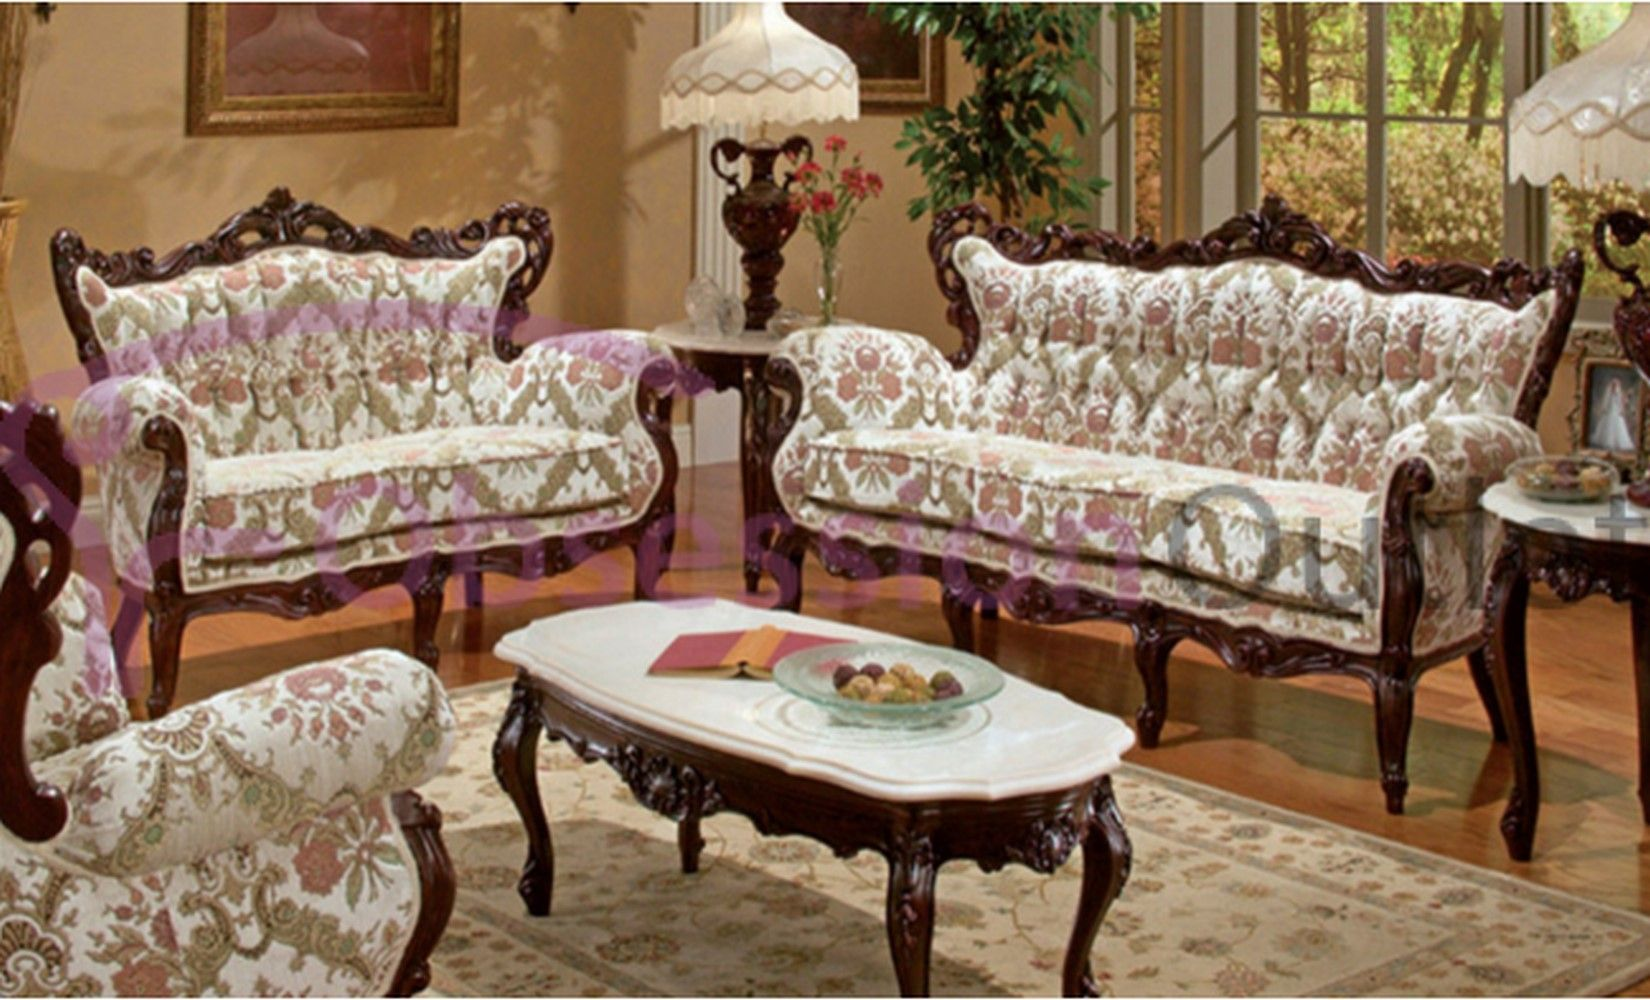 Sku Lsd275 Obsession Outlet In 2020 Victorian Living Room Furniture Victorian Living Room Victorian Furniture